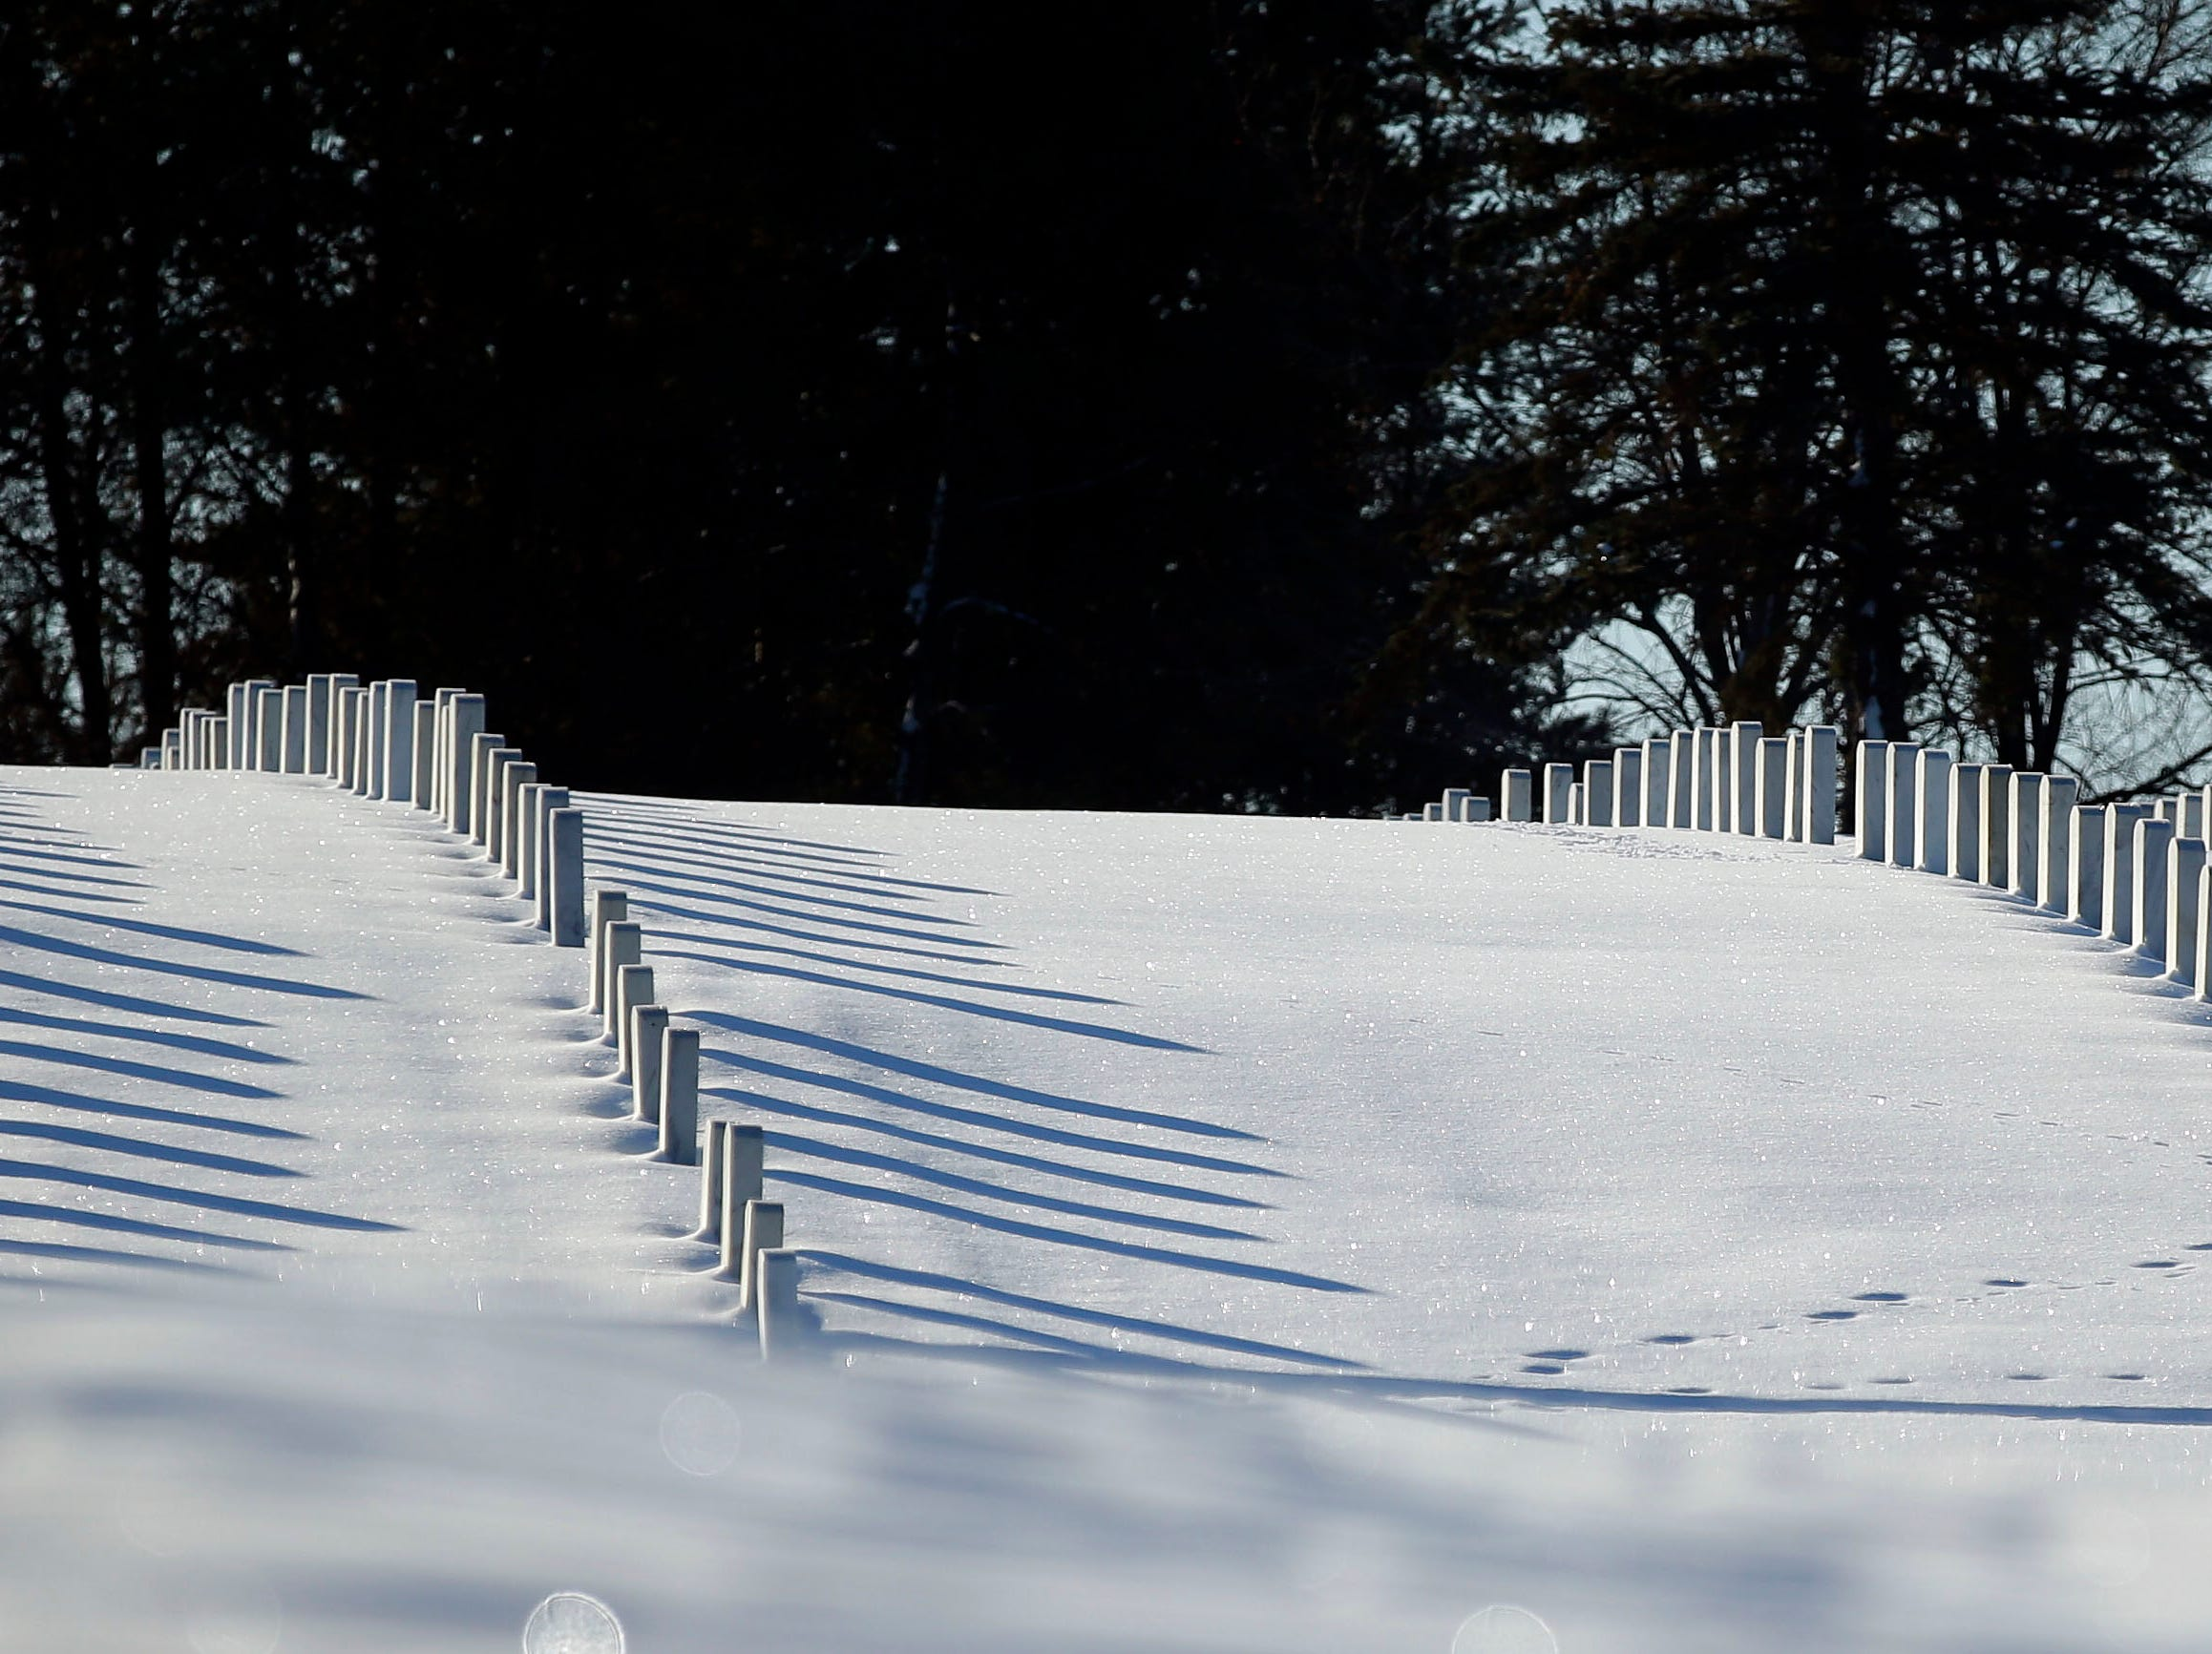 Snow surrounds headstones before volunteers take part in Wreaths Across America Day at the Central Wisconsin Veterans Memorial Cemetery Saturday, December 15, 2018, in King, Wis. Over 7000 graves at King were honored with wreaths. Over 1400 other locations took part in the coordinated ceremony.